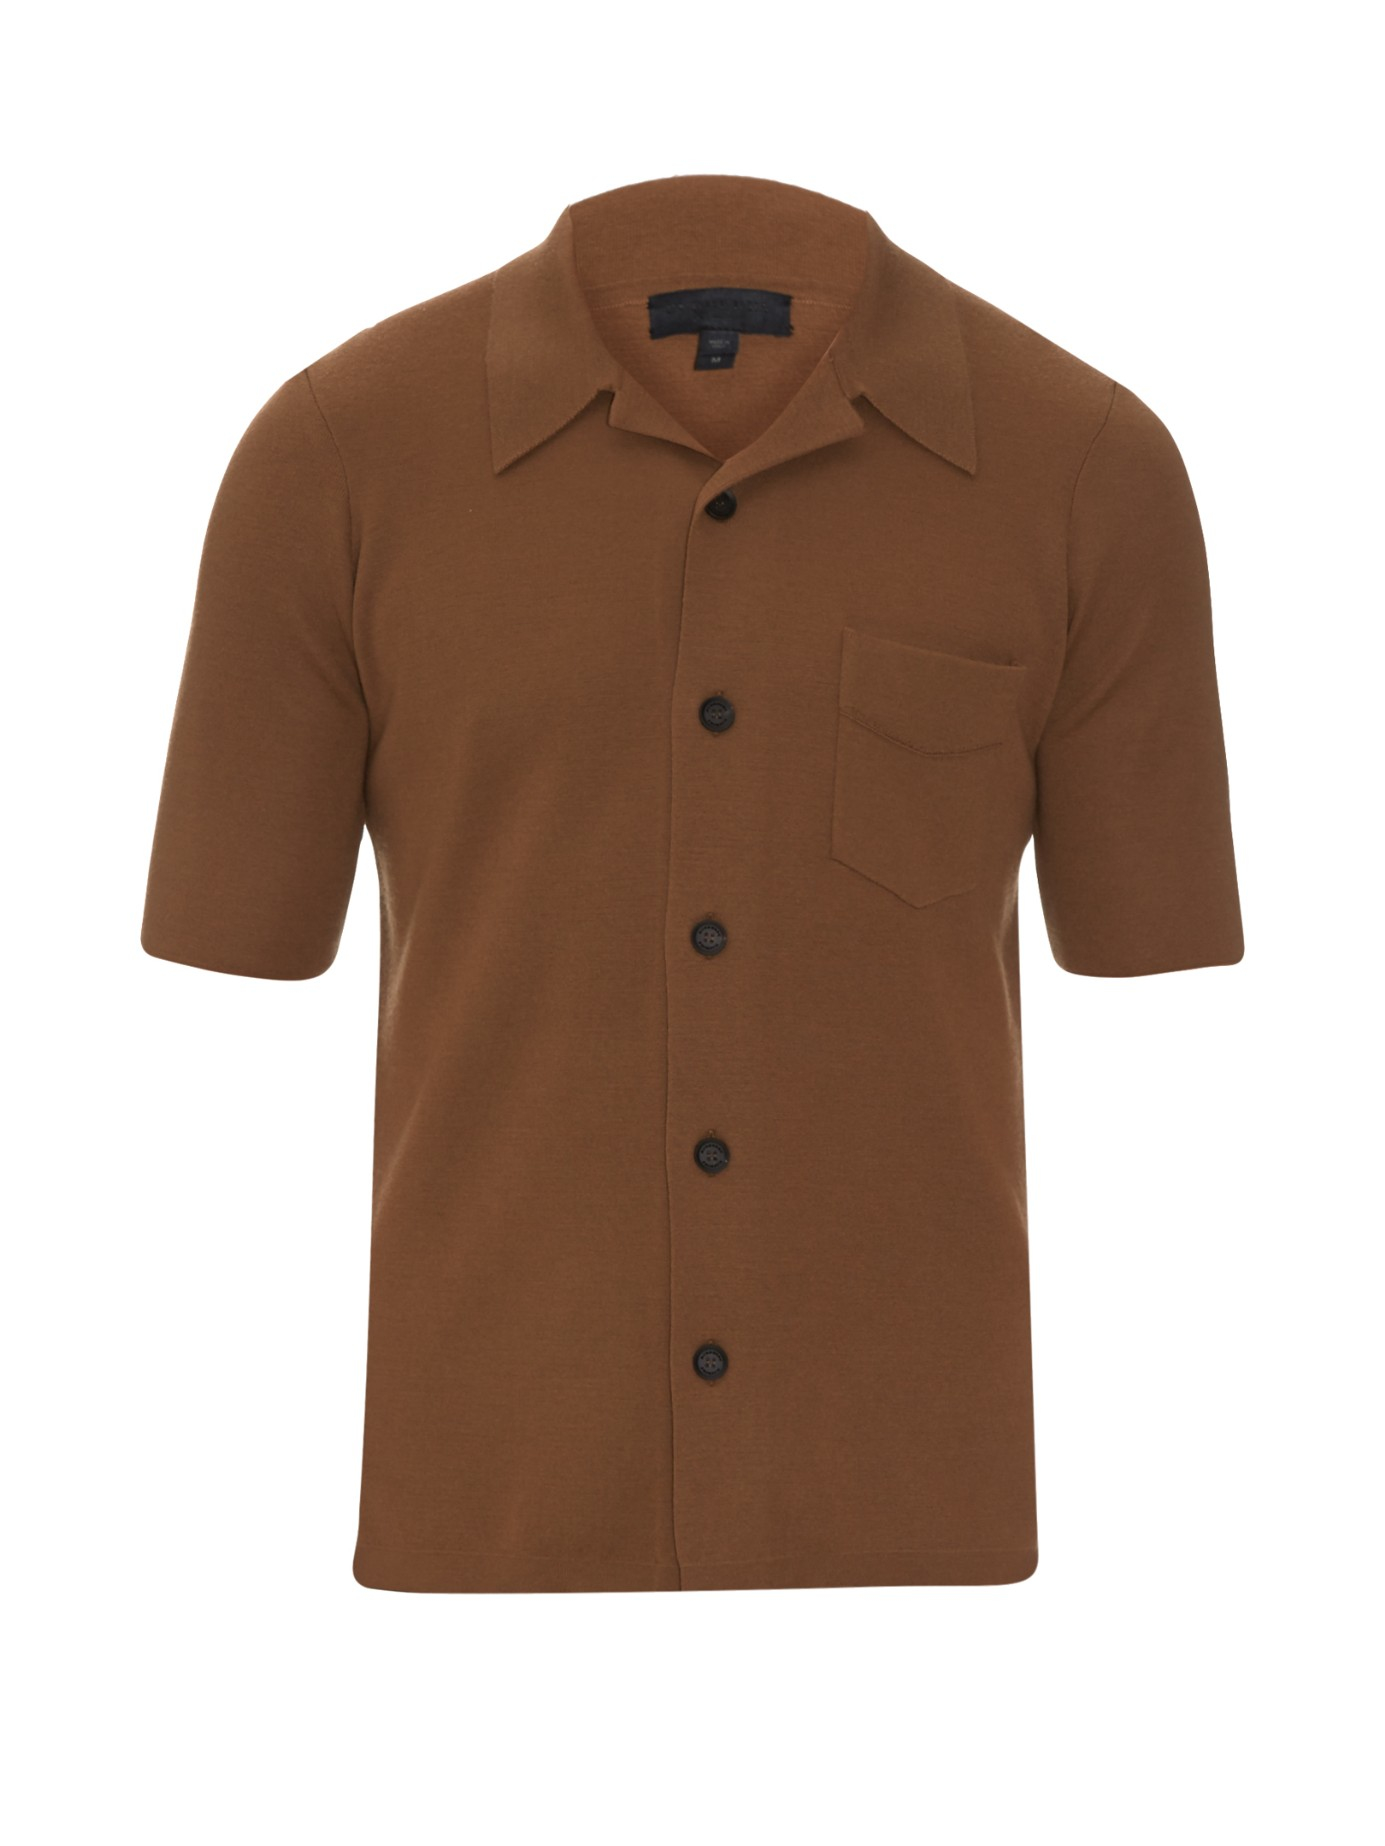 Lyst - Burberry prorsum Button-down Cashmere-blend Shirt in Brown ...